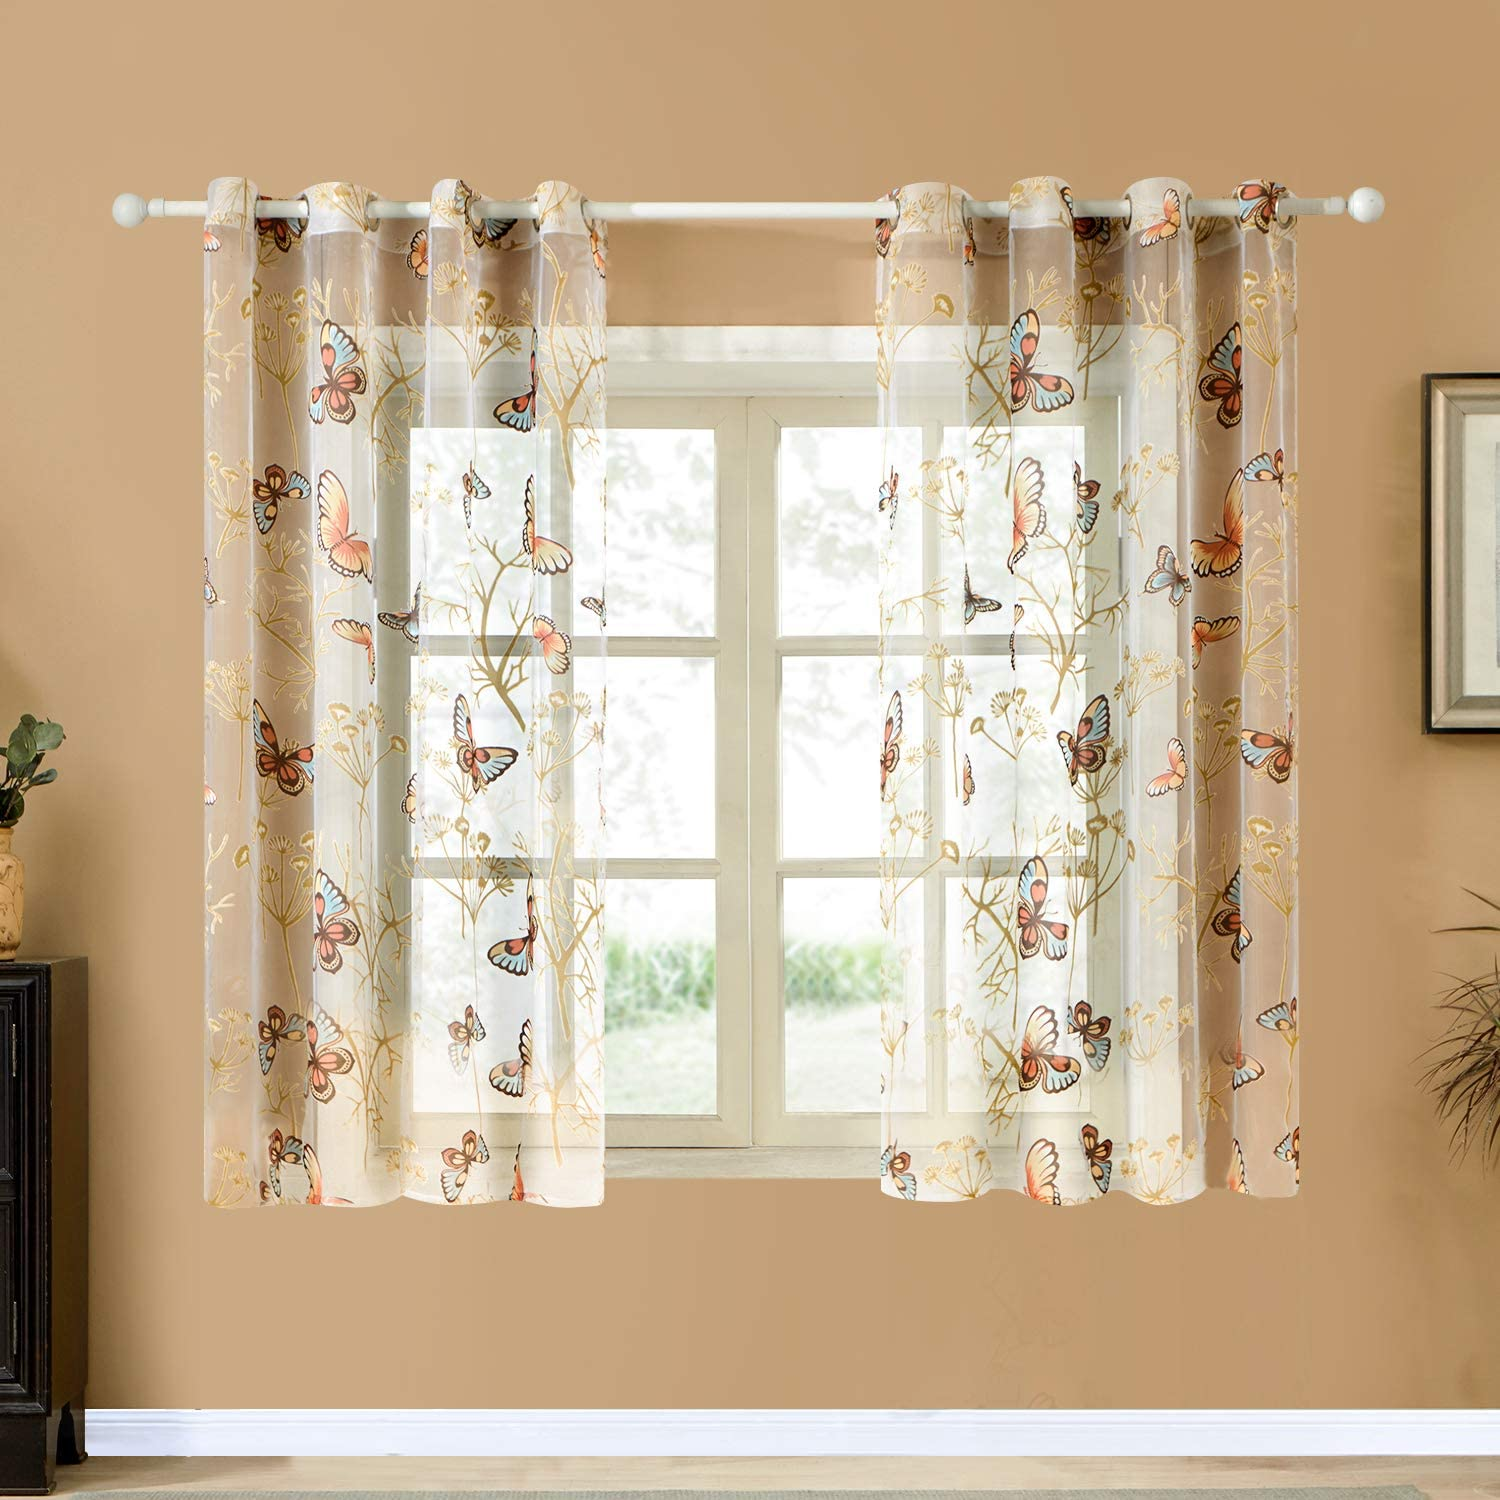 Top Finel Butterfly Voile Sheer Curtains Length for Inch Max 86% OFF 45 Bedr Sales